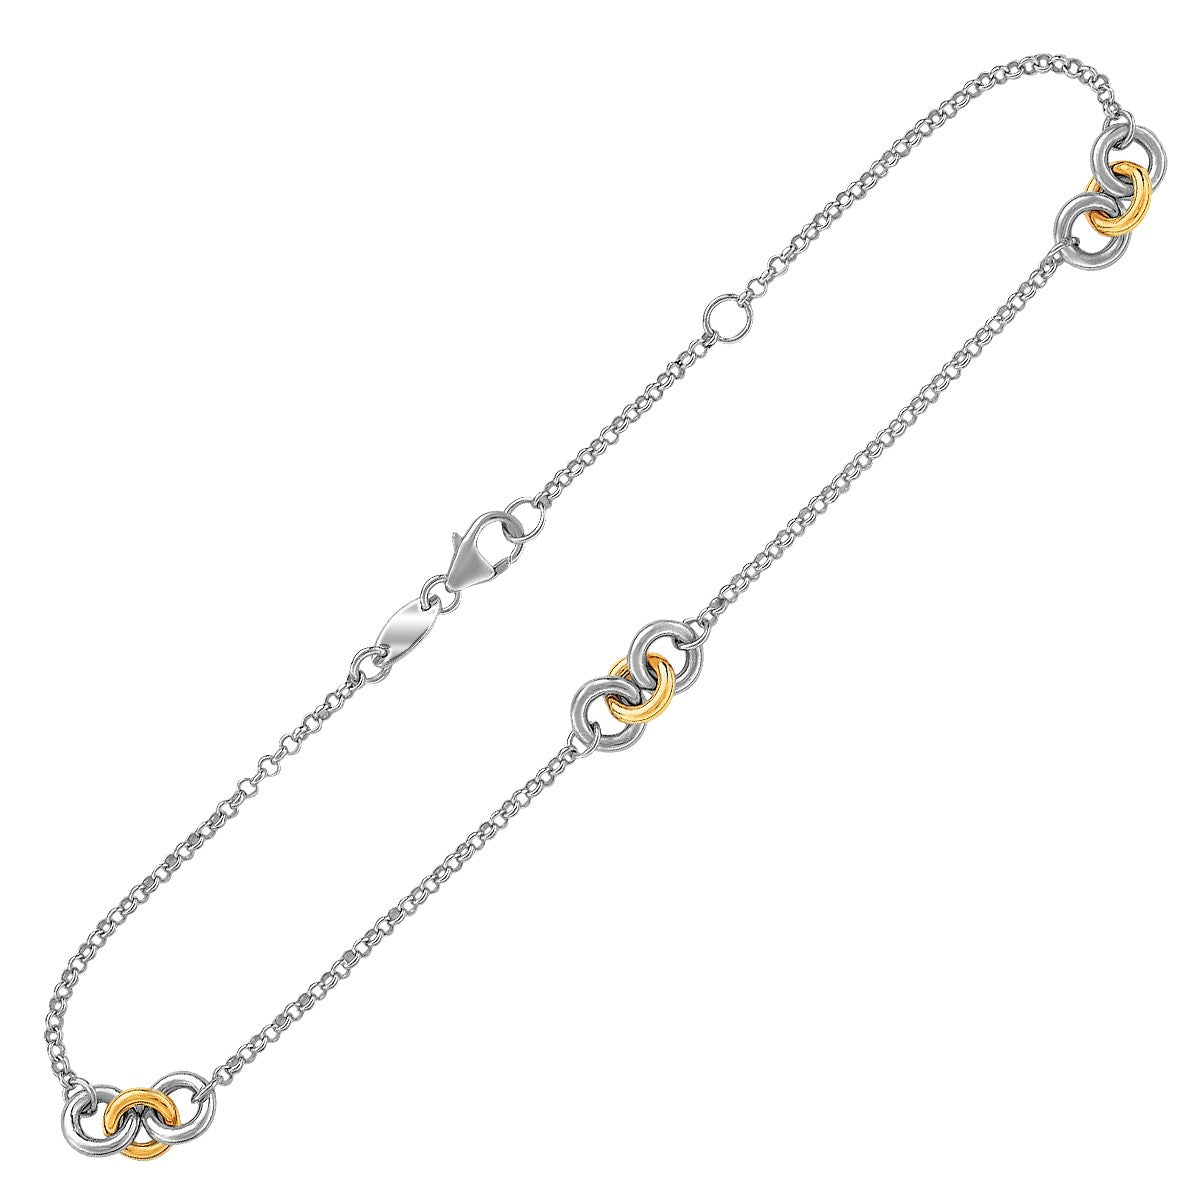 14K Yellow Gold and Sterling Silver Triple Ring Stationed Anklet - Uniquepedia.com